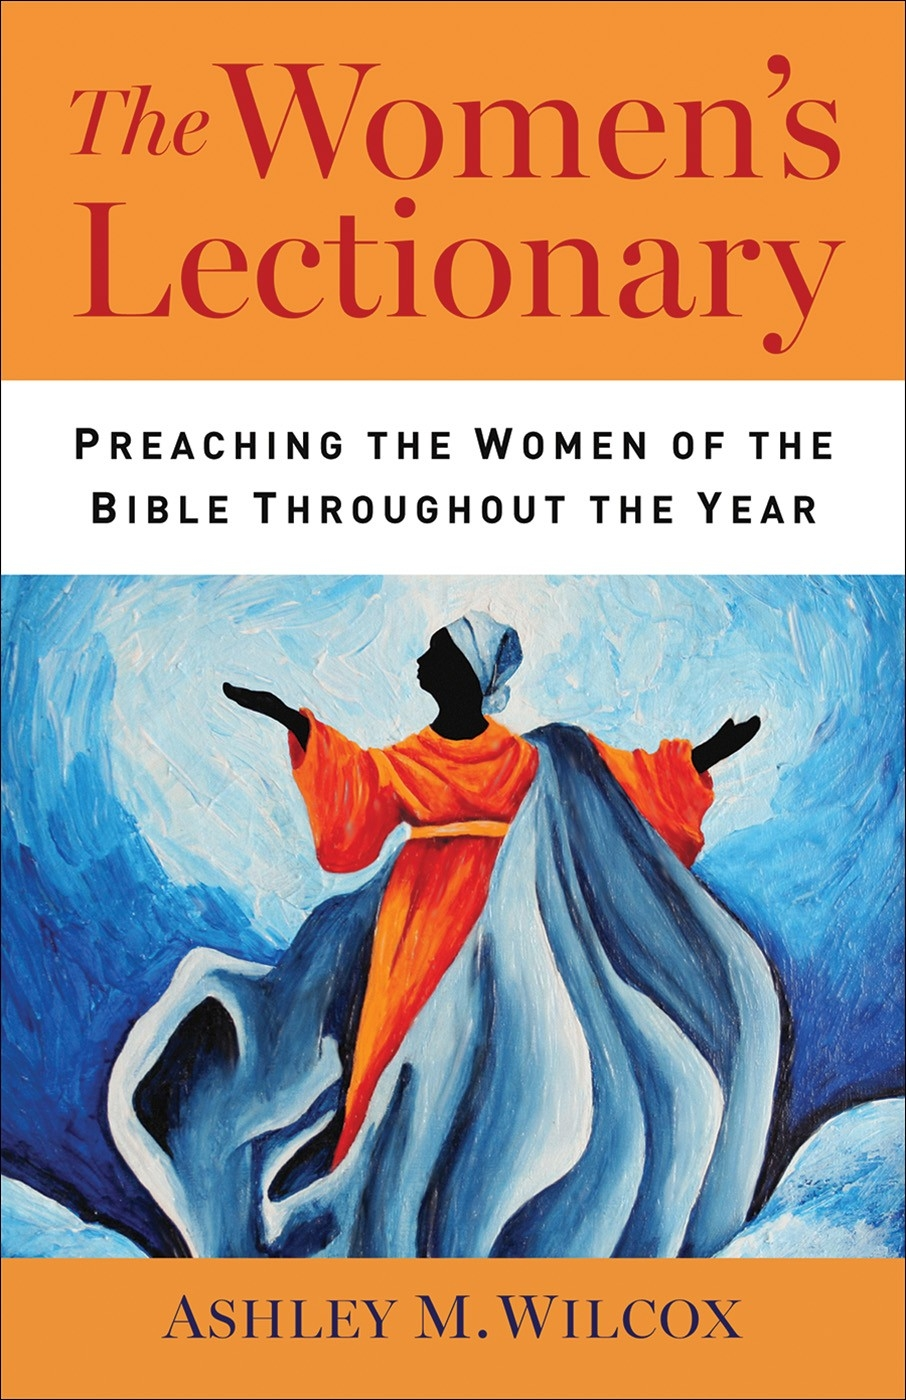 The Women's Lectionary Paper - Ashley M. Wilcox  Cokesbury Liturgical Calendar 2020